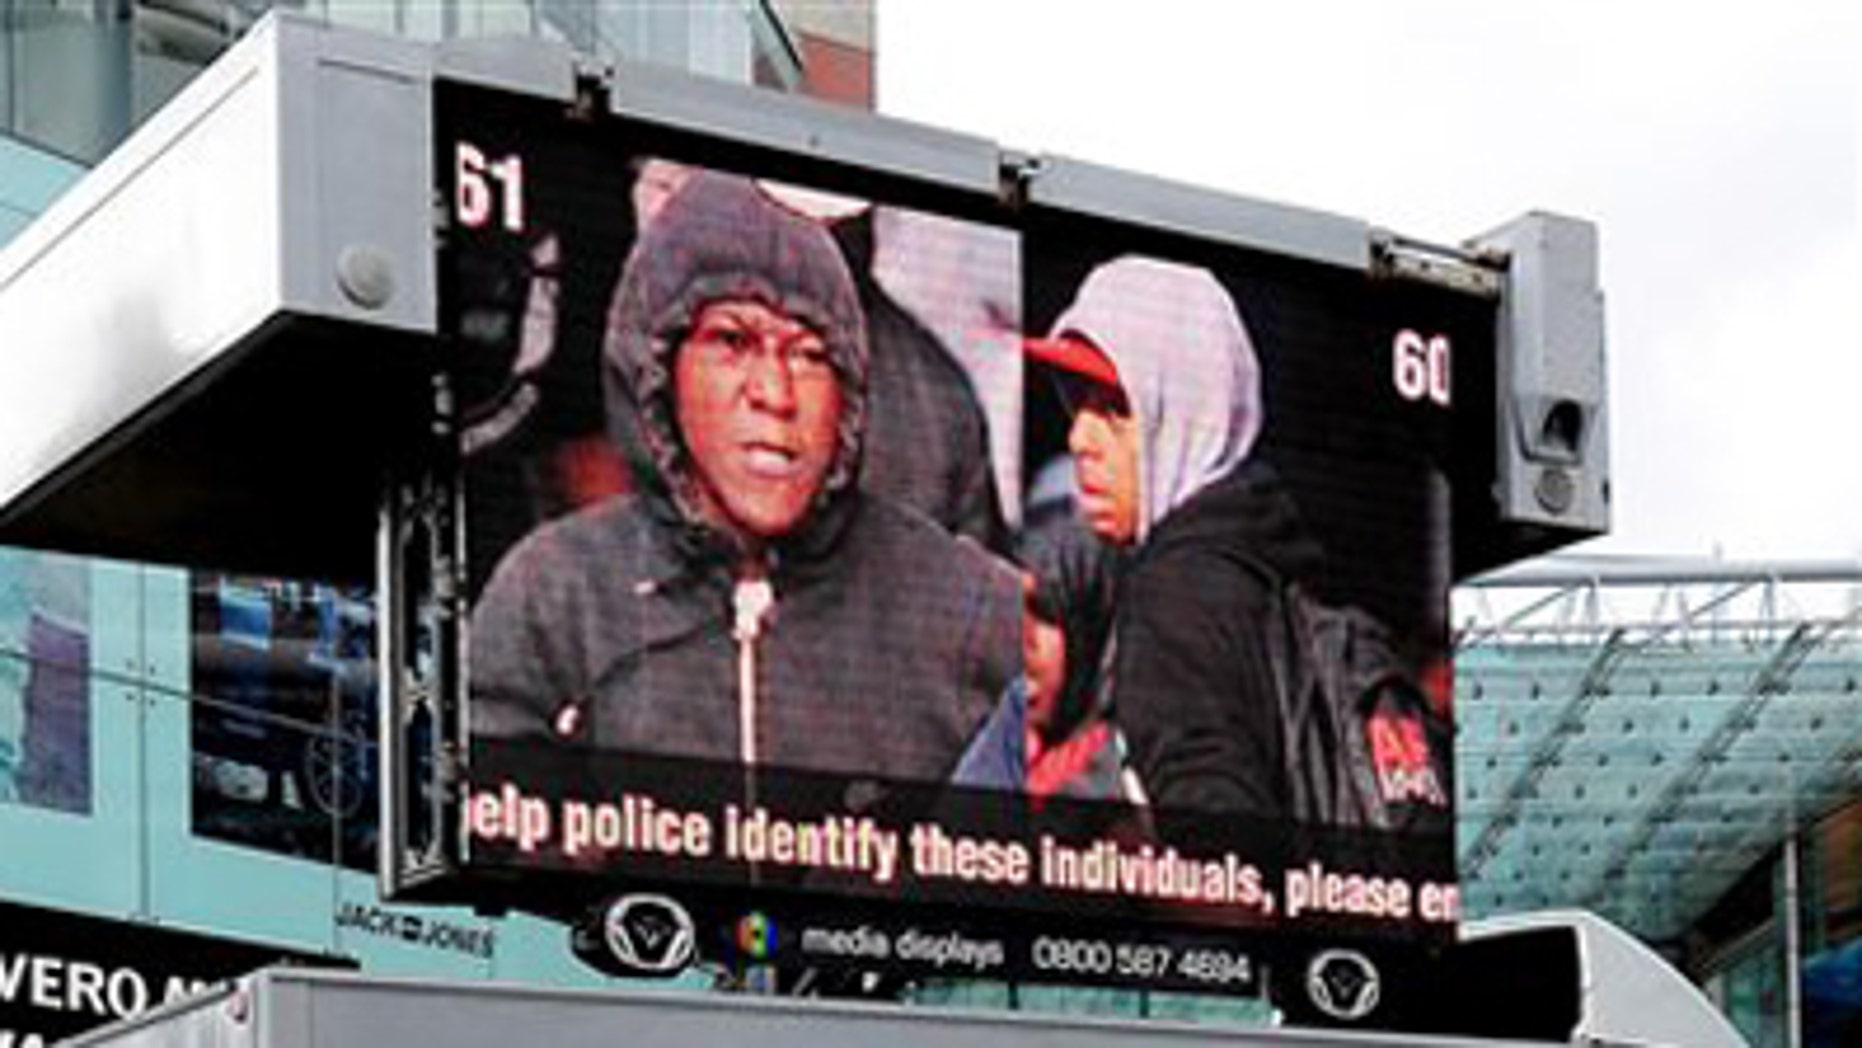 West Midlands Police appeal to the public by displaying pictures of suspected rioters outside the Bull Ring shopping centre in Birmingham England Friday Aug. 12, 2011.